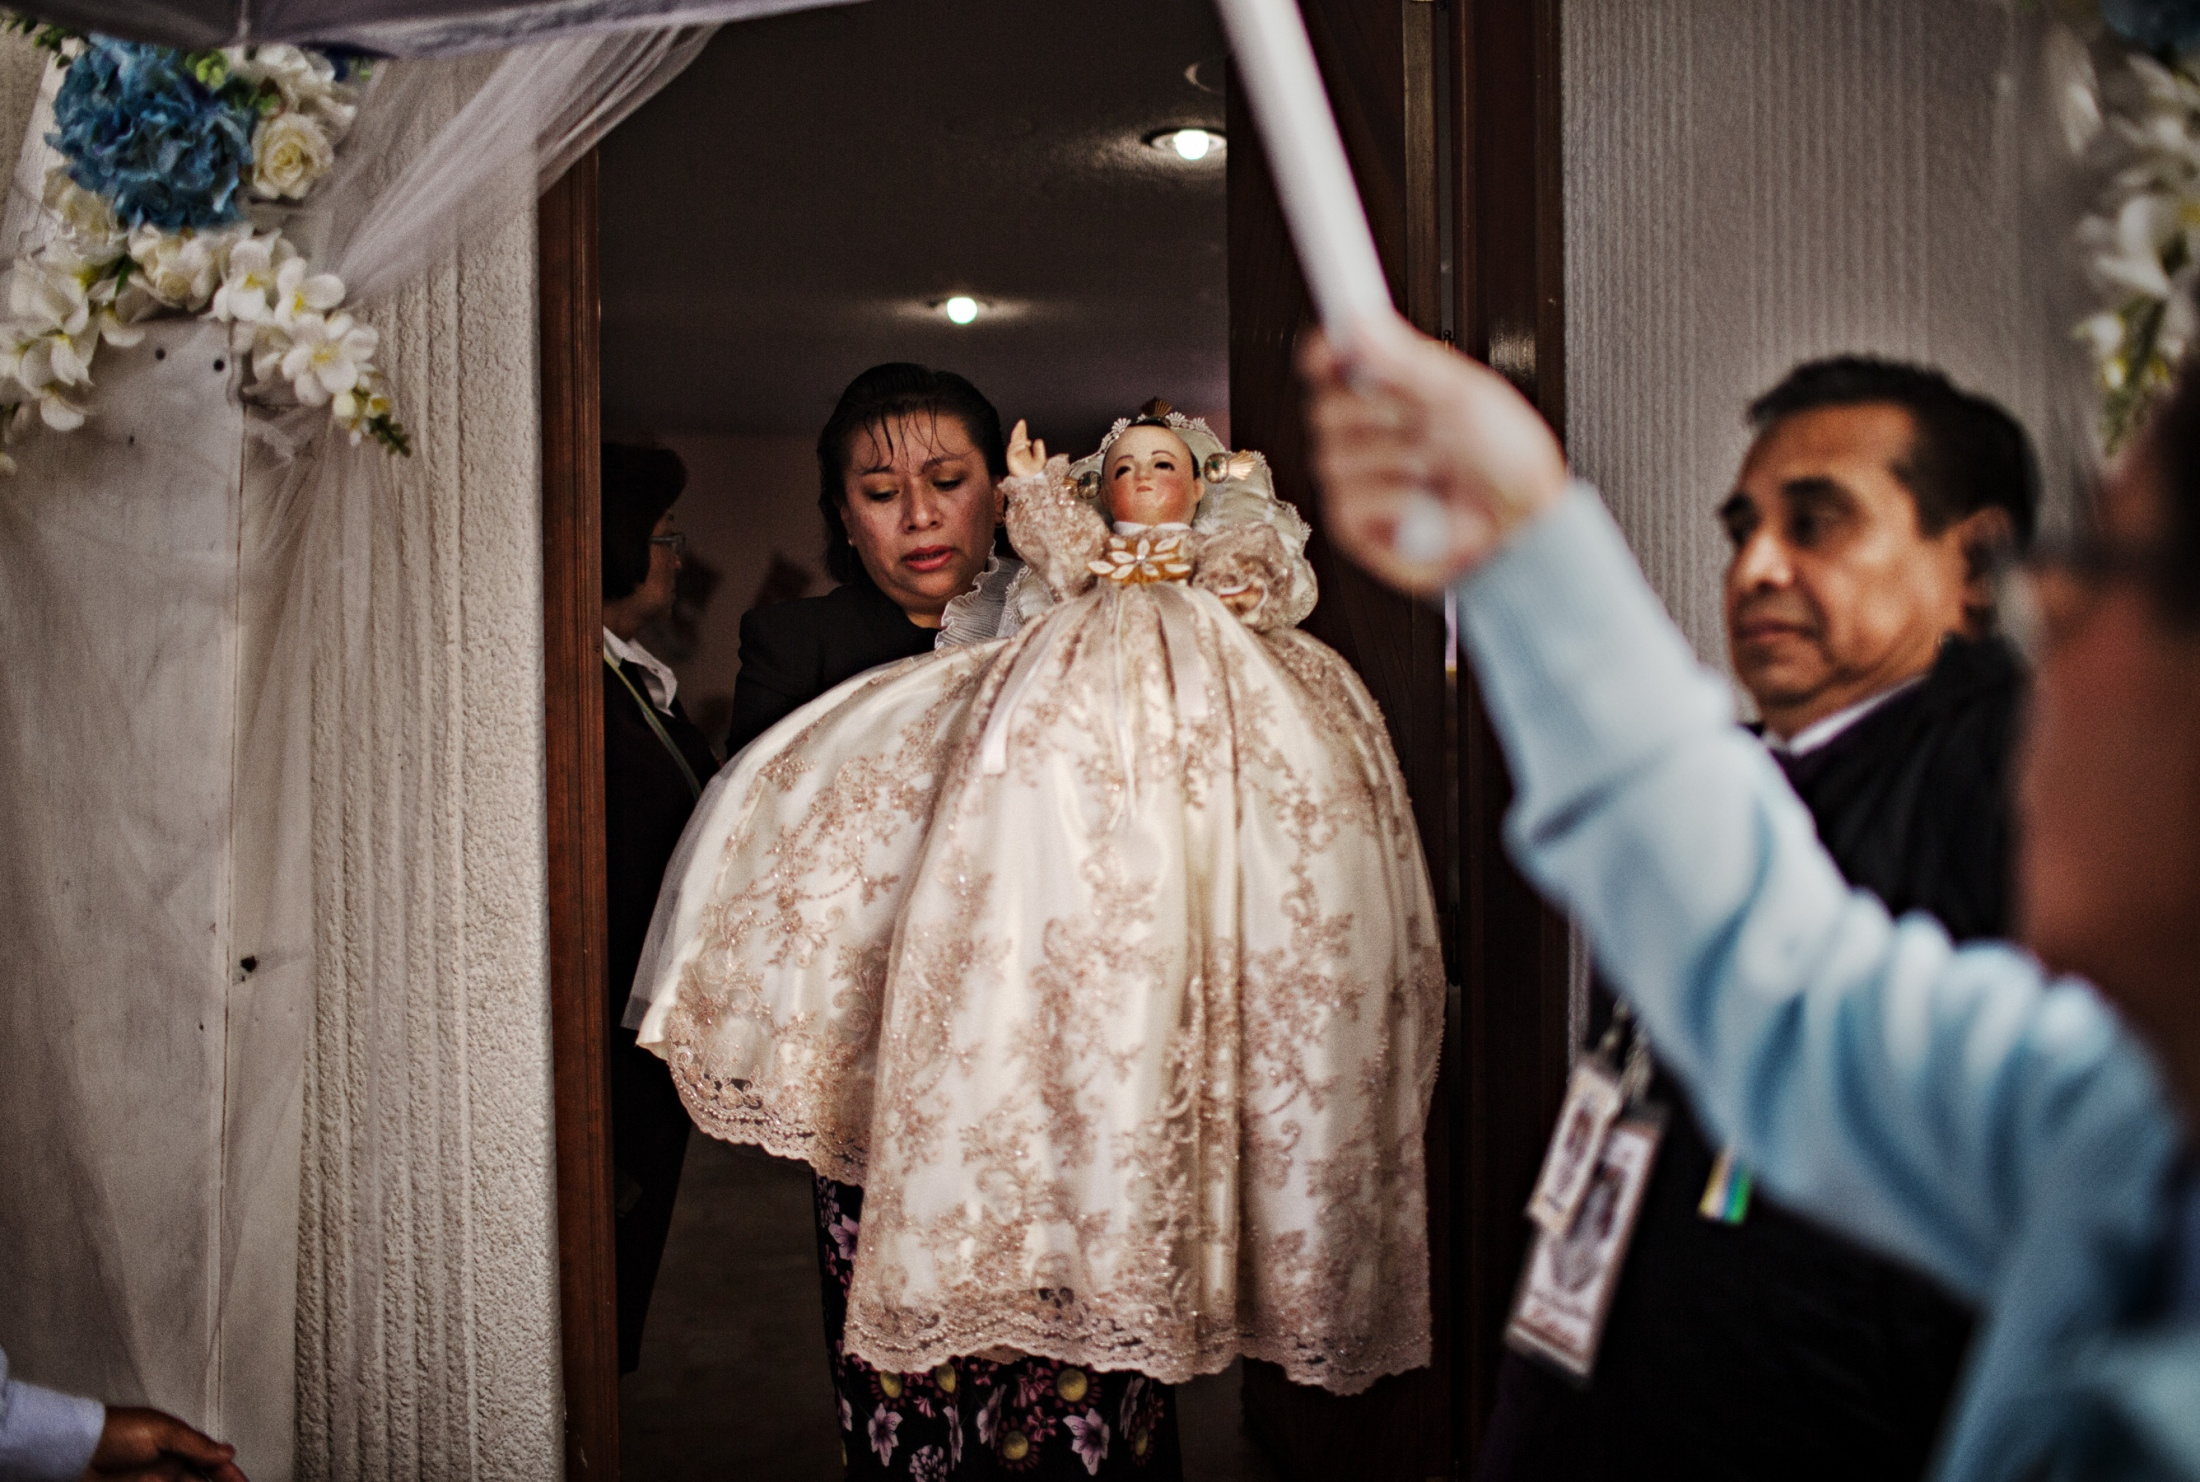 Niñopa is carefully held and protected from direct light as they exit Ms. Medina's home on their way to the cathedral to meet the new Majordomo. The Anthropological Institute of Mexico has determined that Niñopa, which is a 430 year old relic must be protected from direct sun light and flashes. Volunteers hold an umbrella to shield the Niño from sunlight.